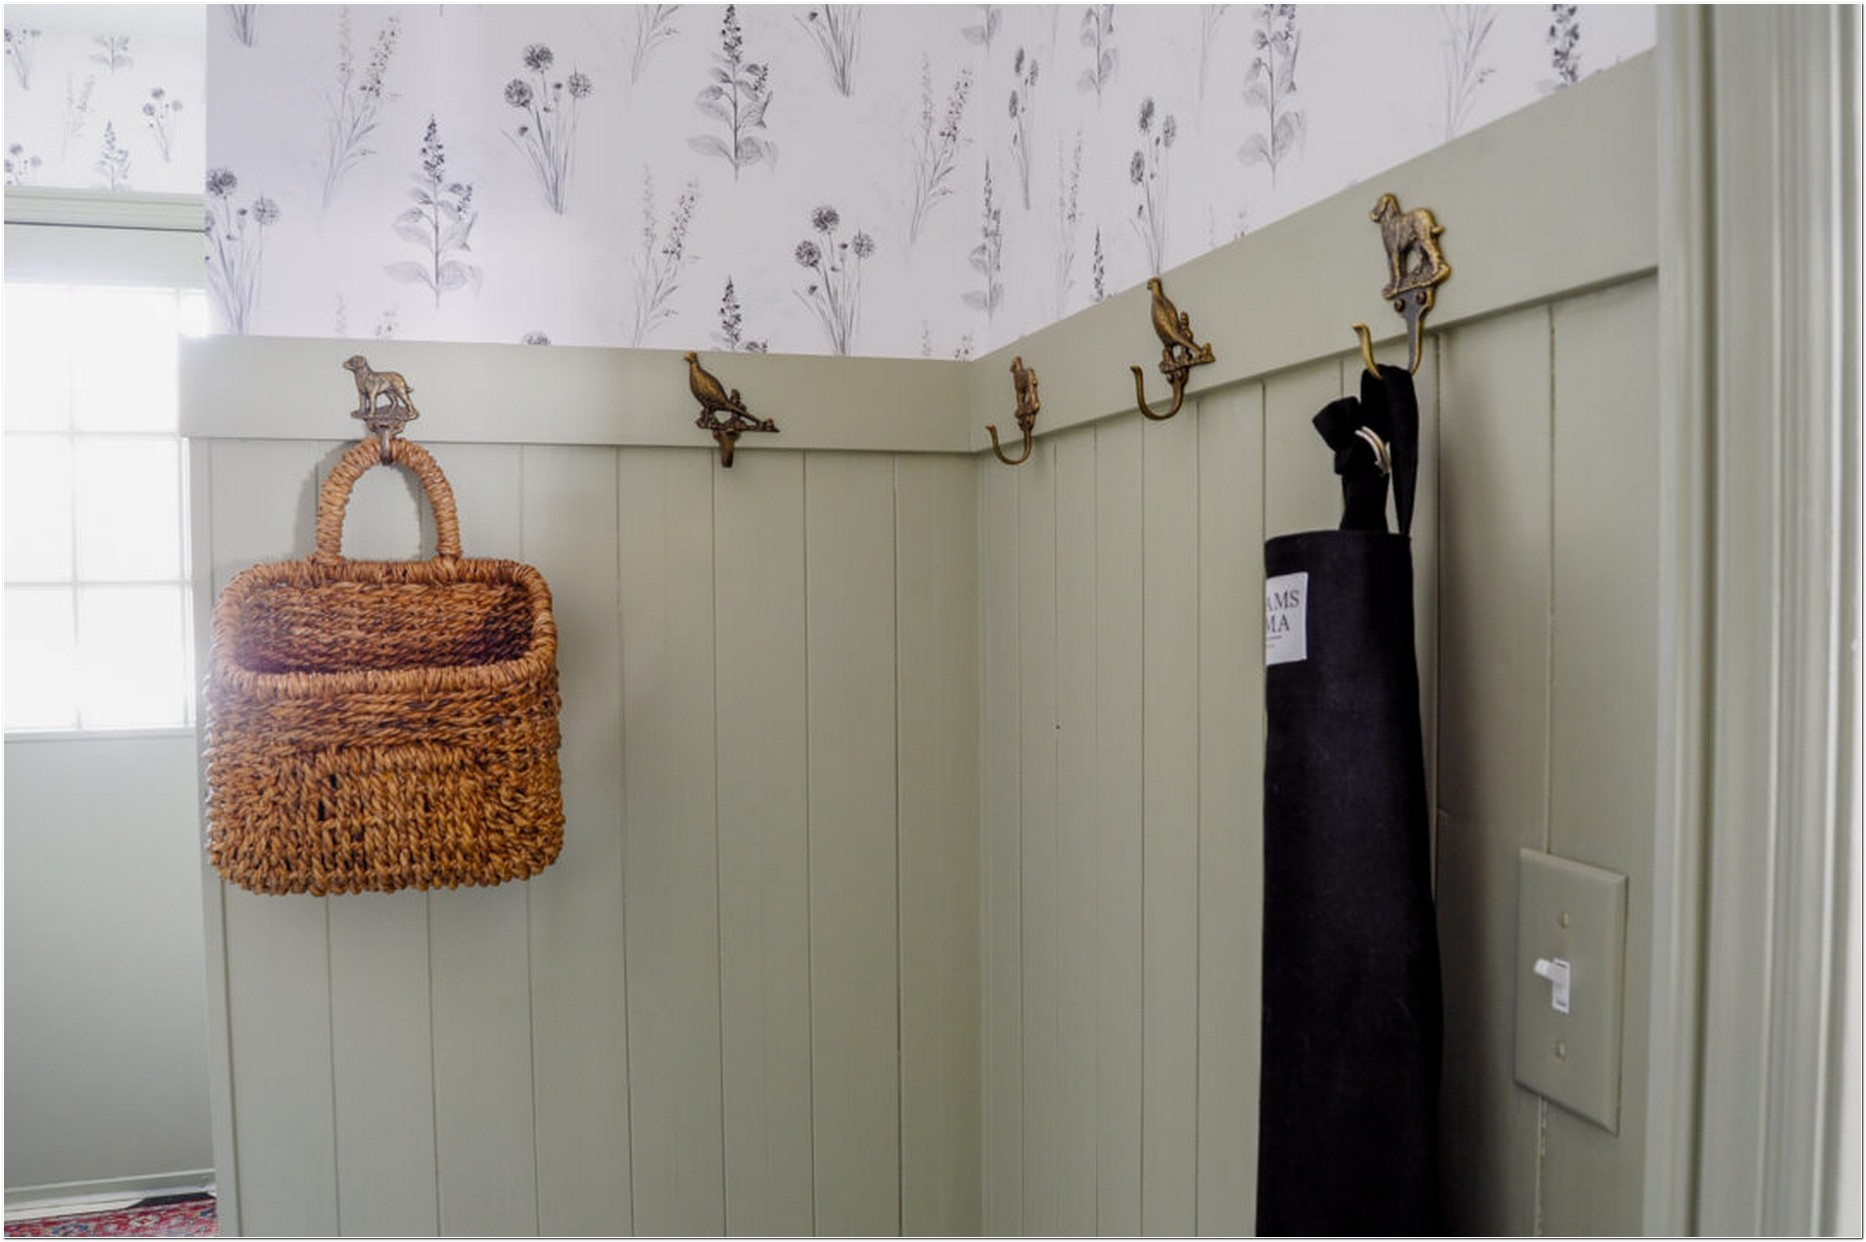 Before and After: The Ordinary, Messy Mudroom Becomes a Charming Cottage Entrance